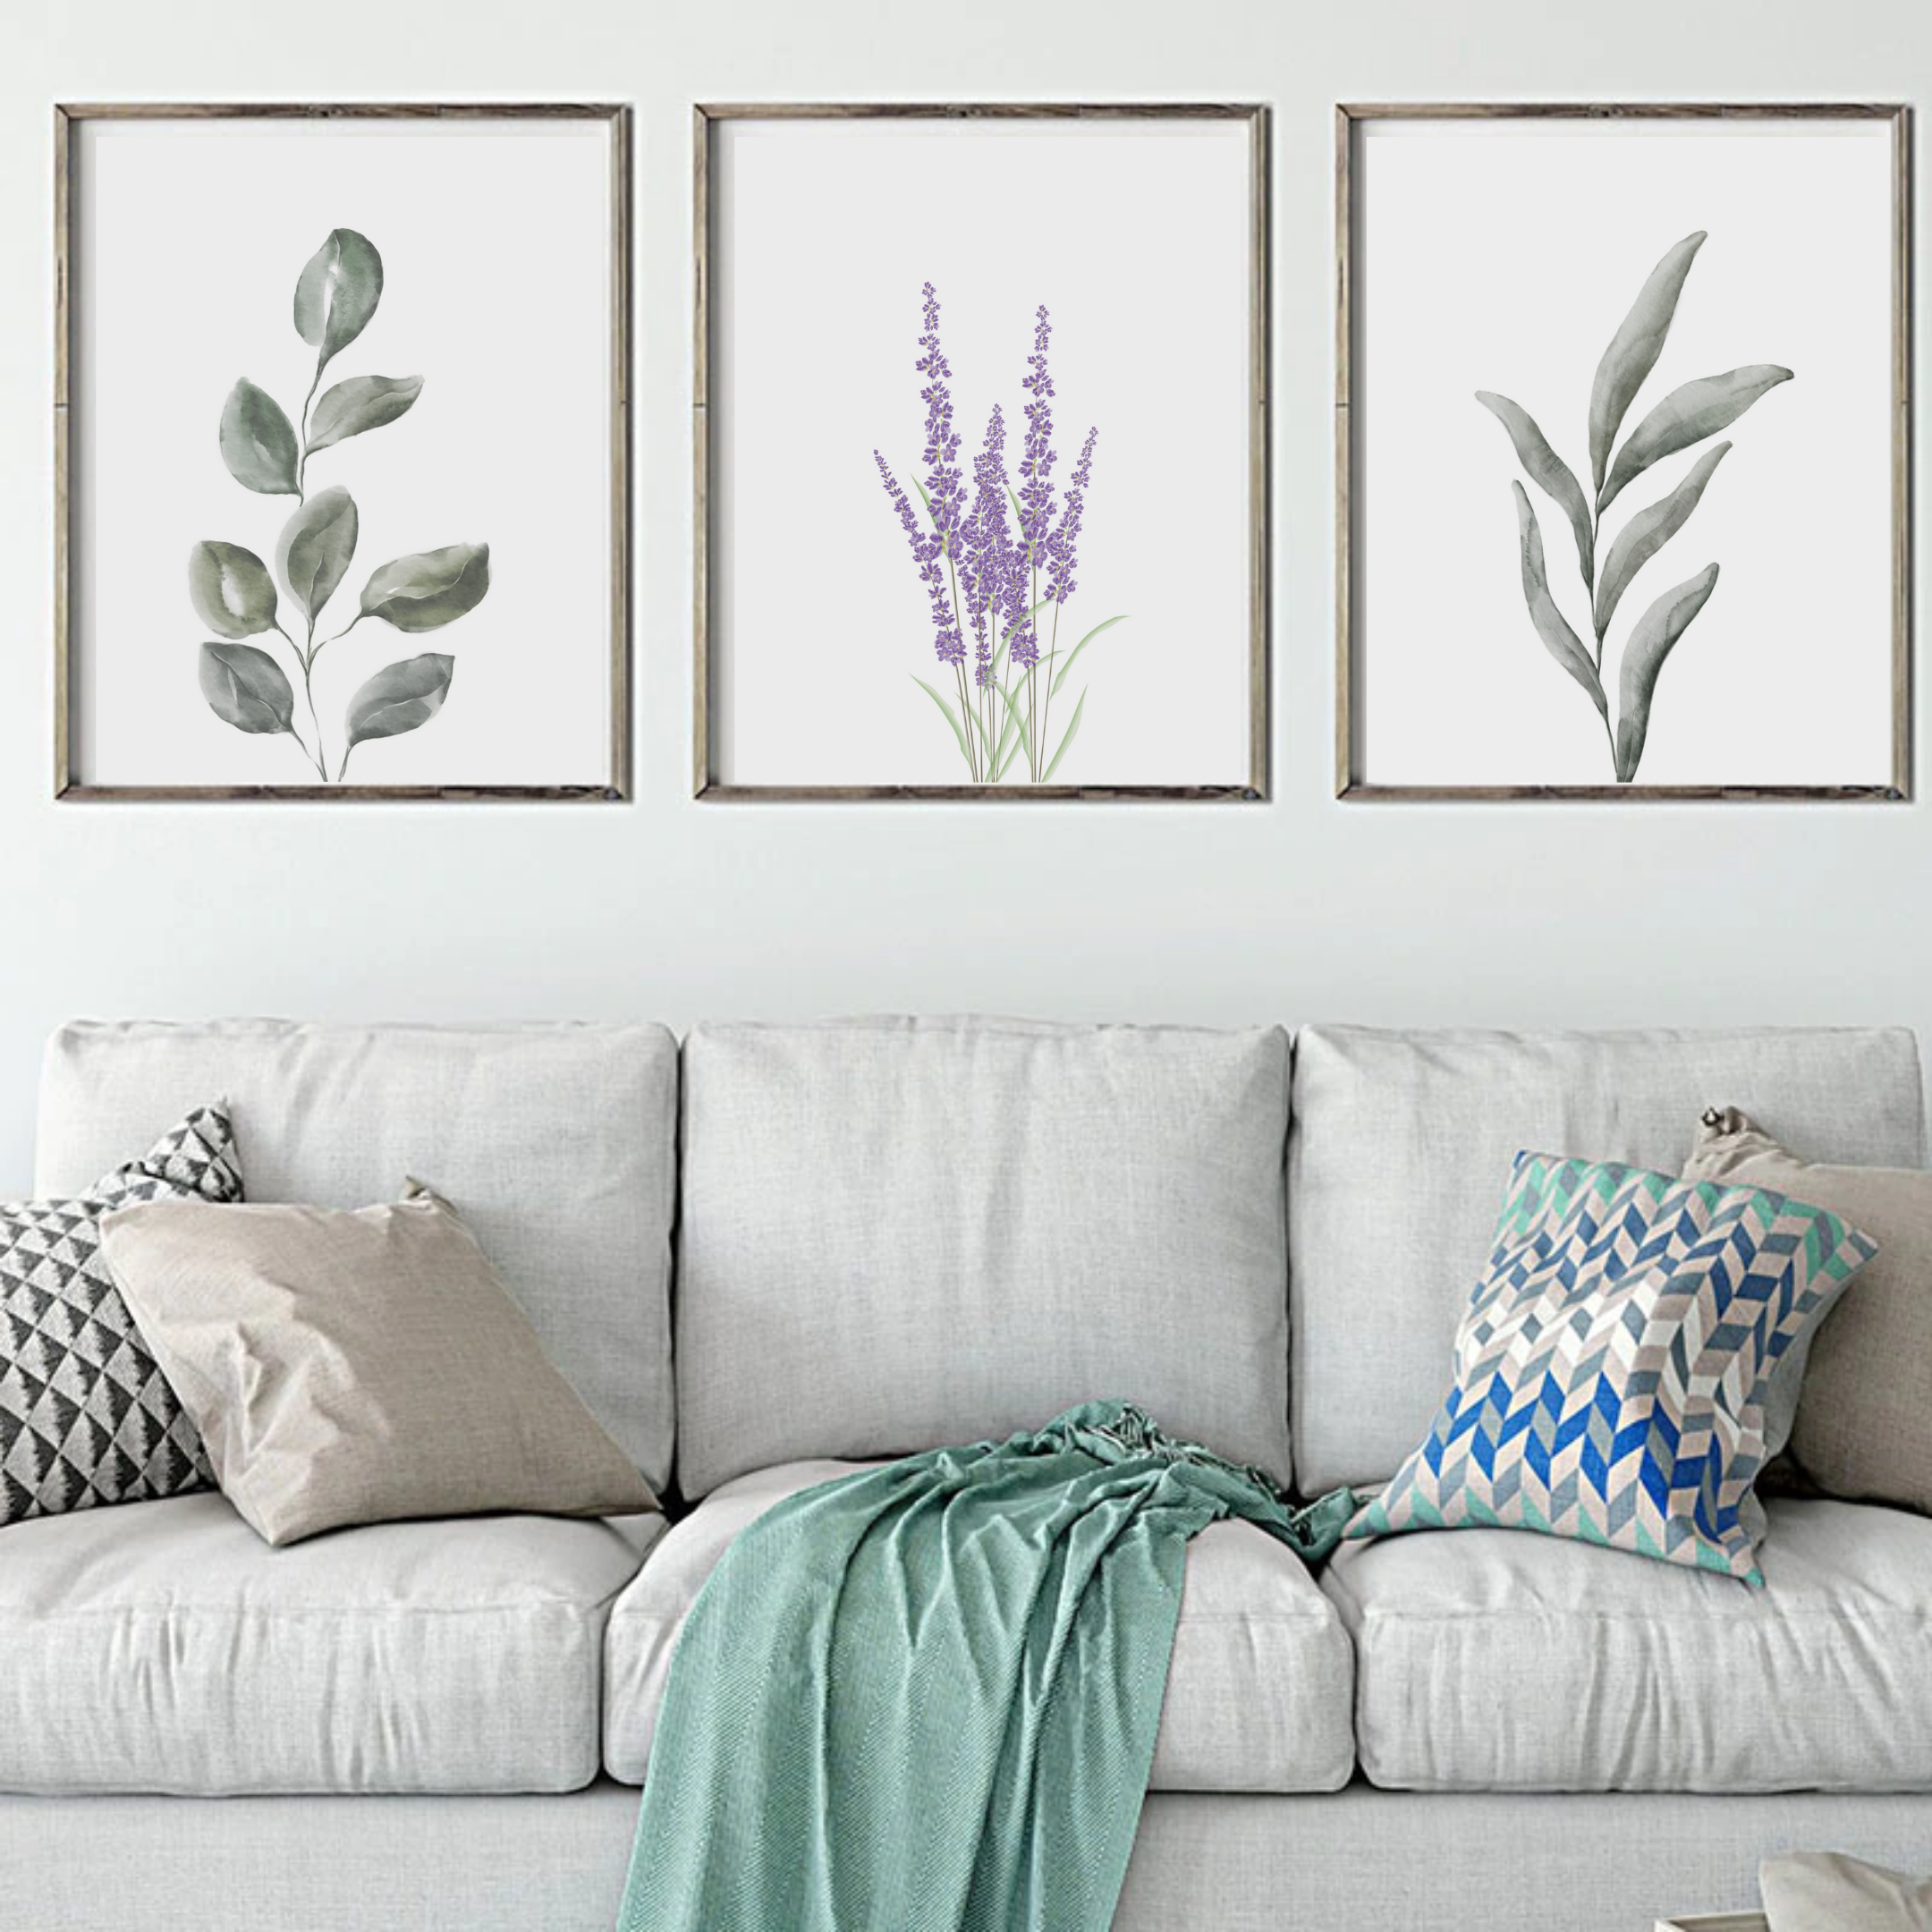 3 Piece Wall Artbotanical Postereucalyptus Printbotanical Etsy 3 Piece Wall Art Decor Wall Art Living Room